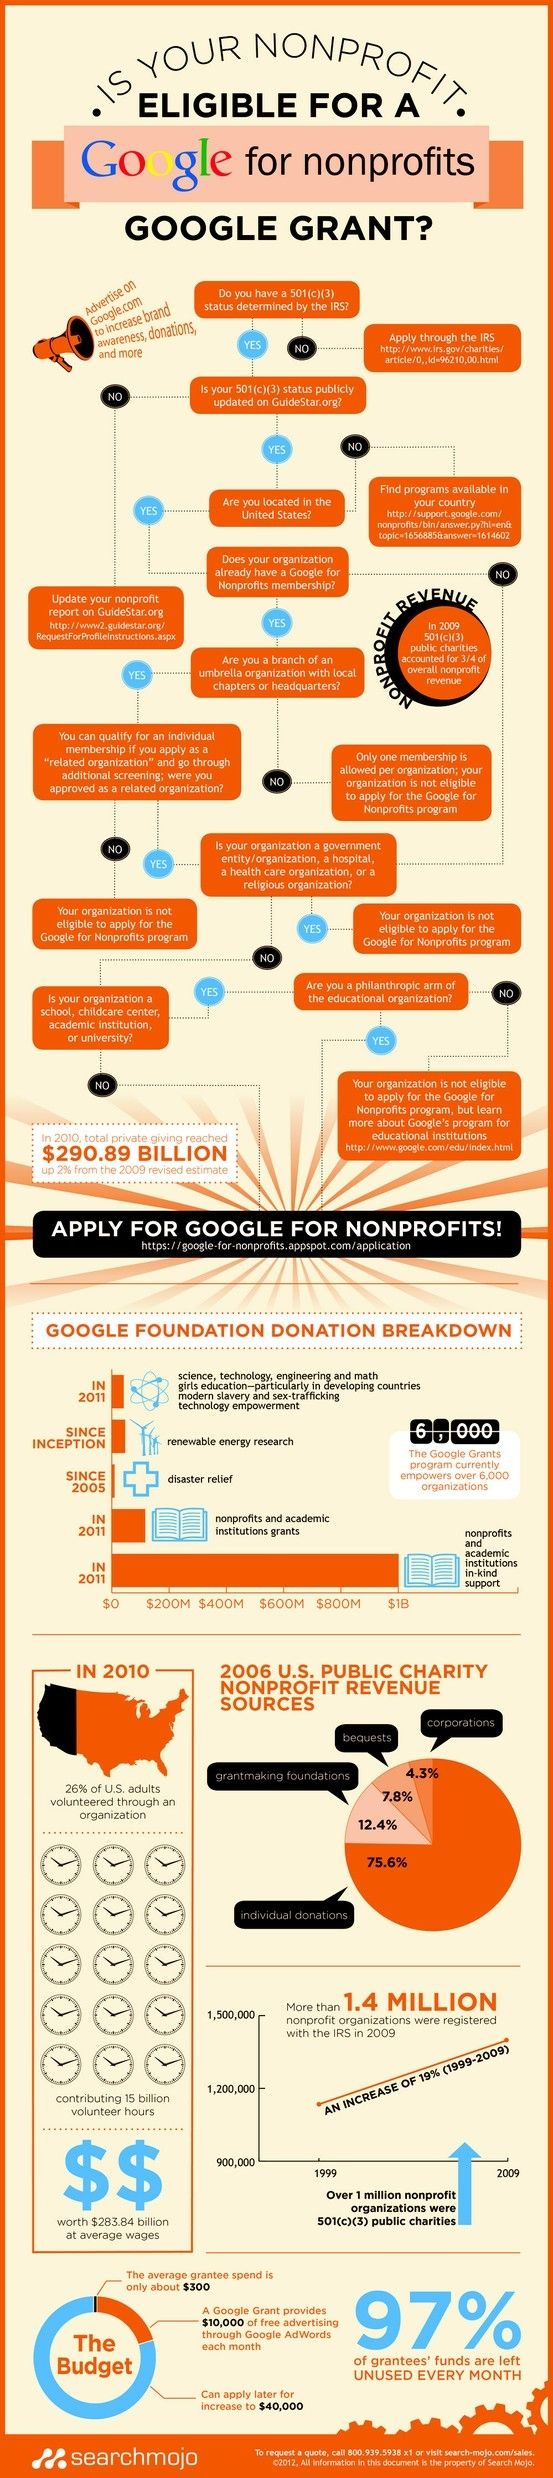 fundraising infographic : Is Your Nonprofit Eligible for a Nonprofits Google Grant?…